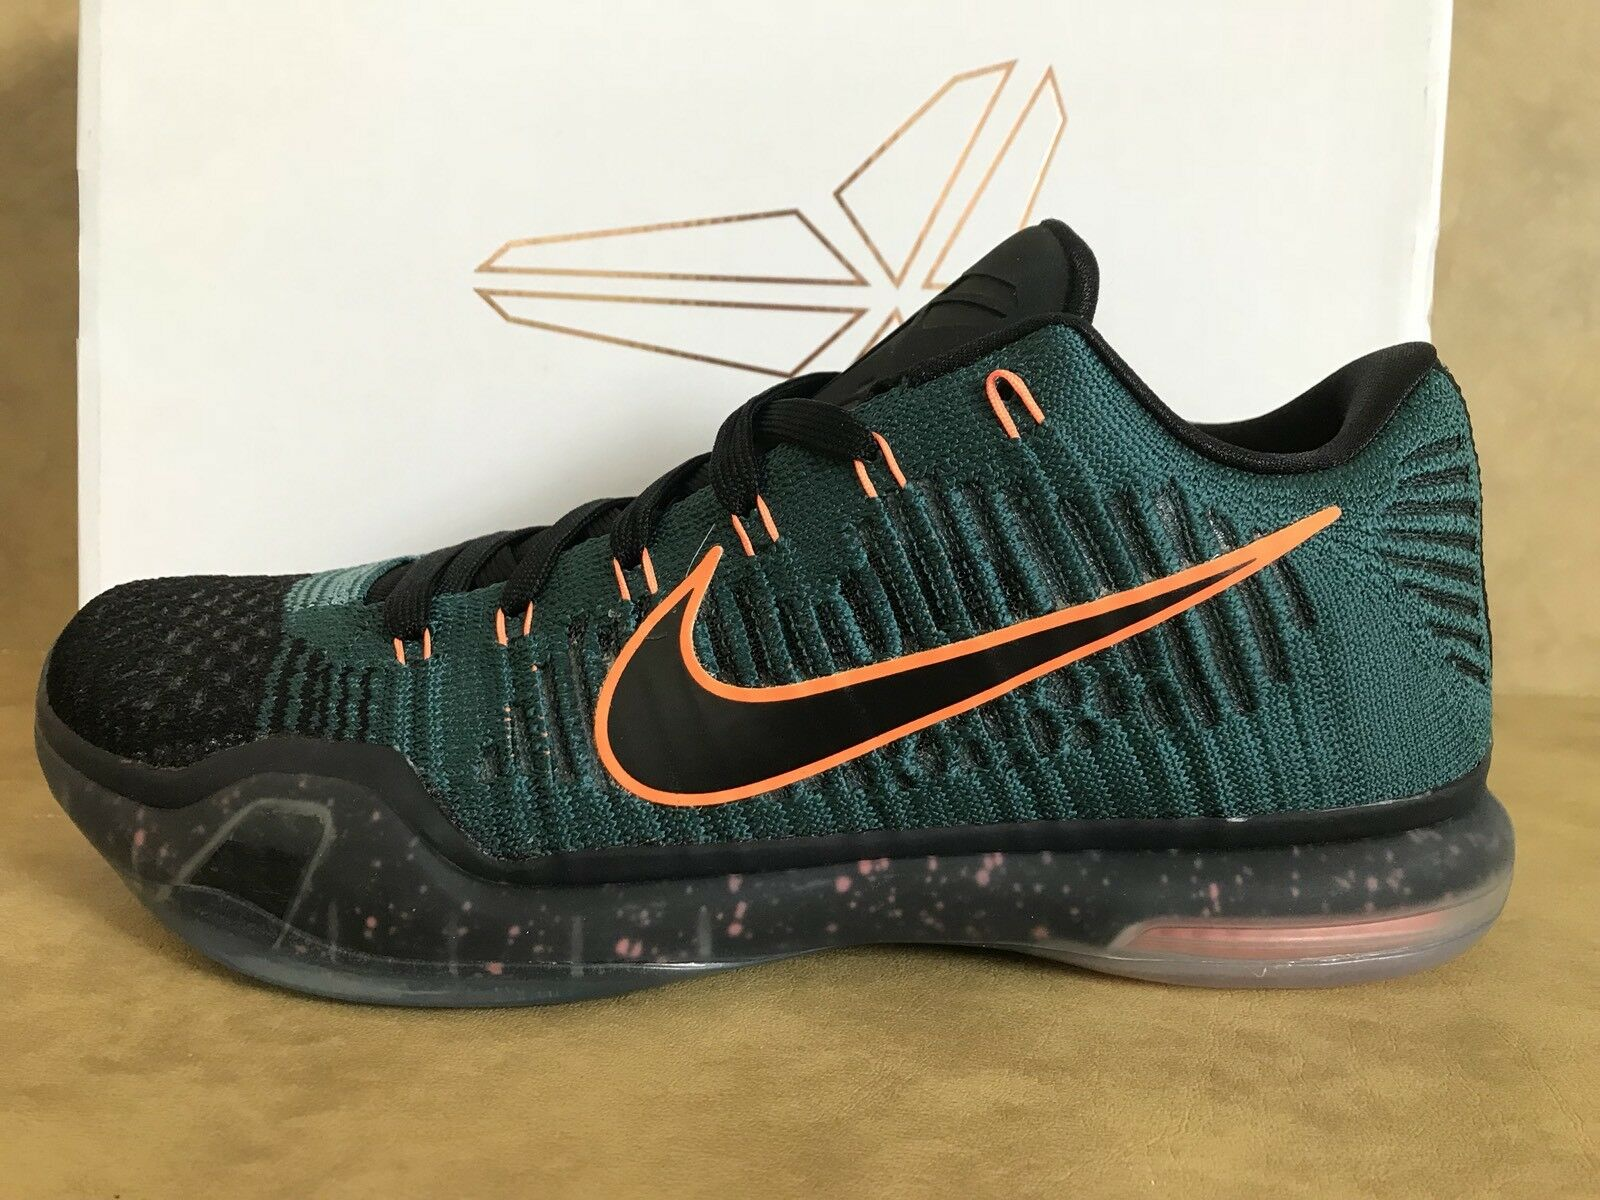 NIKE KOBE X 10 ELITE LOW FLYKNIT DRILL SERGEANT ATOM TEAL 747212 303 SZ 8.5 NEW